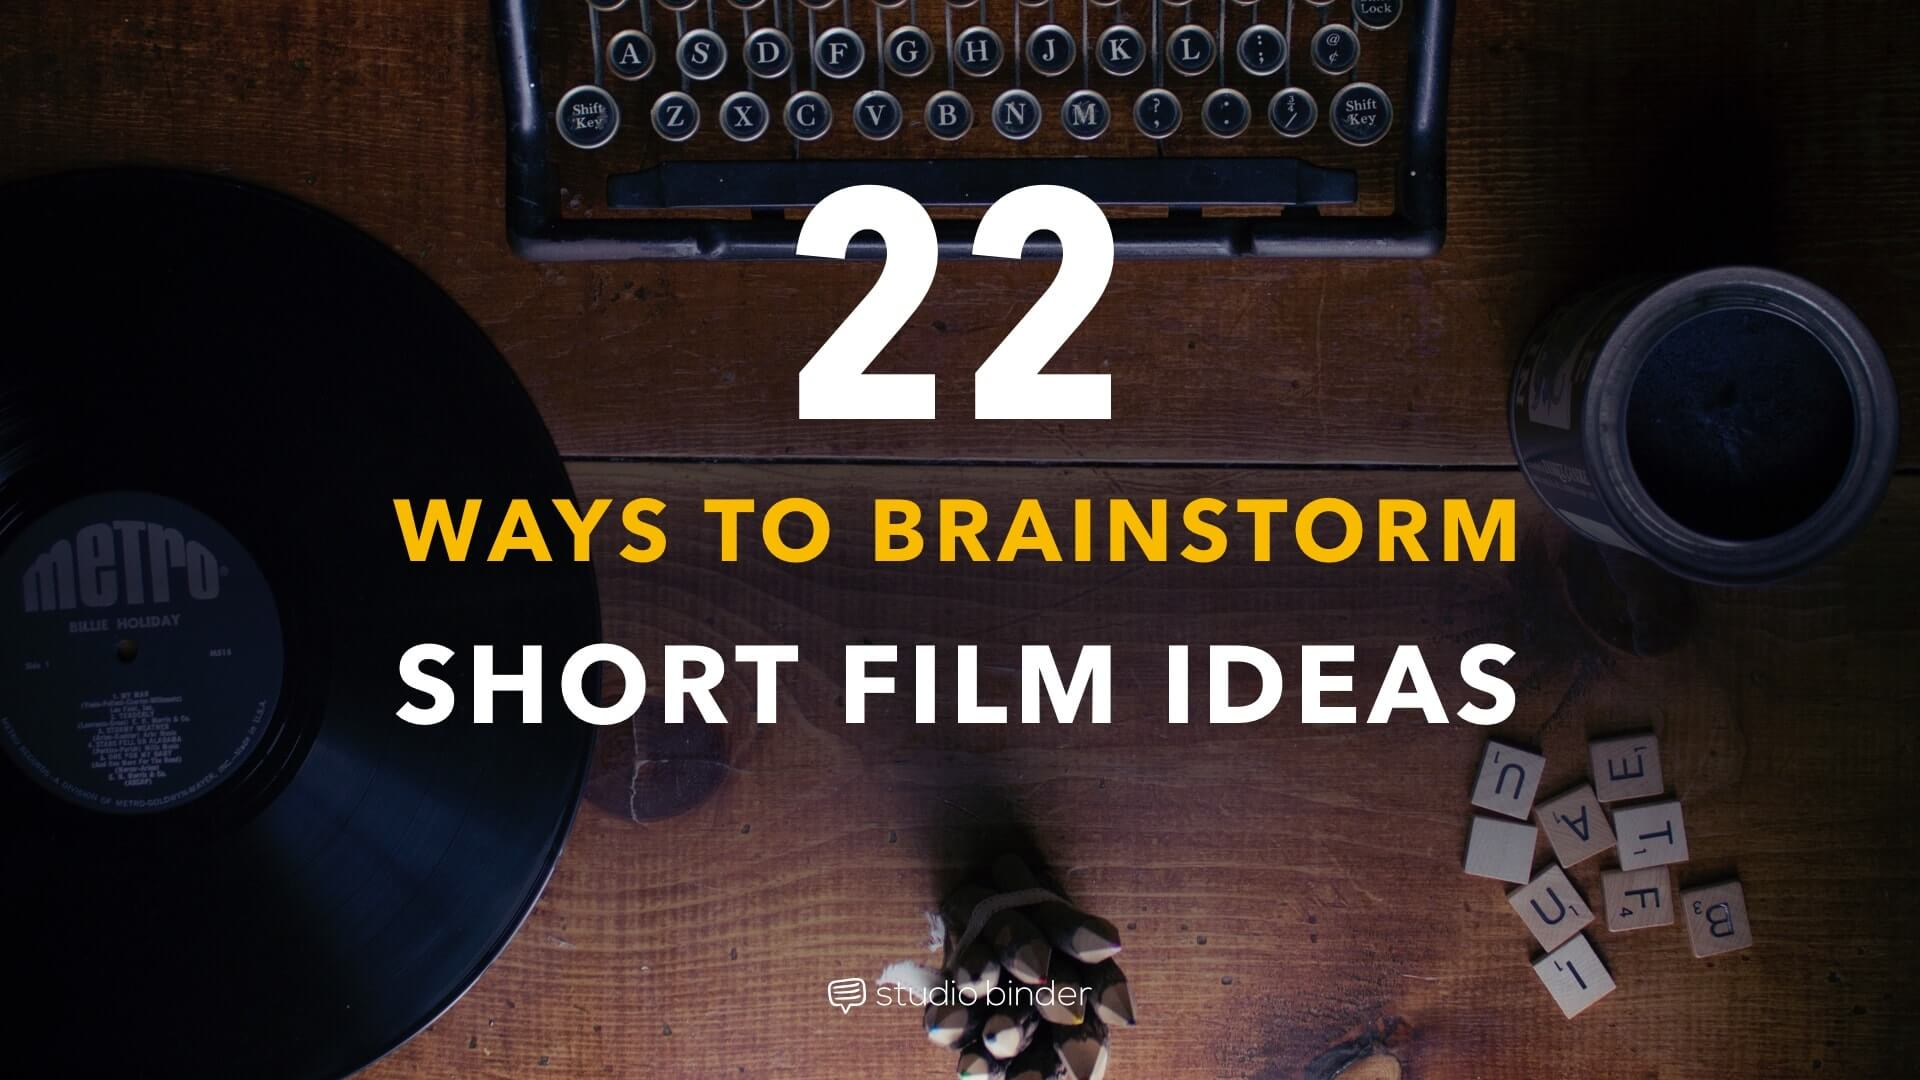 22 ways to brainstorm short film ideas you can actually produce